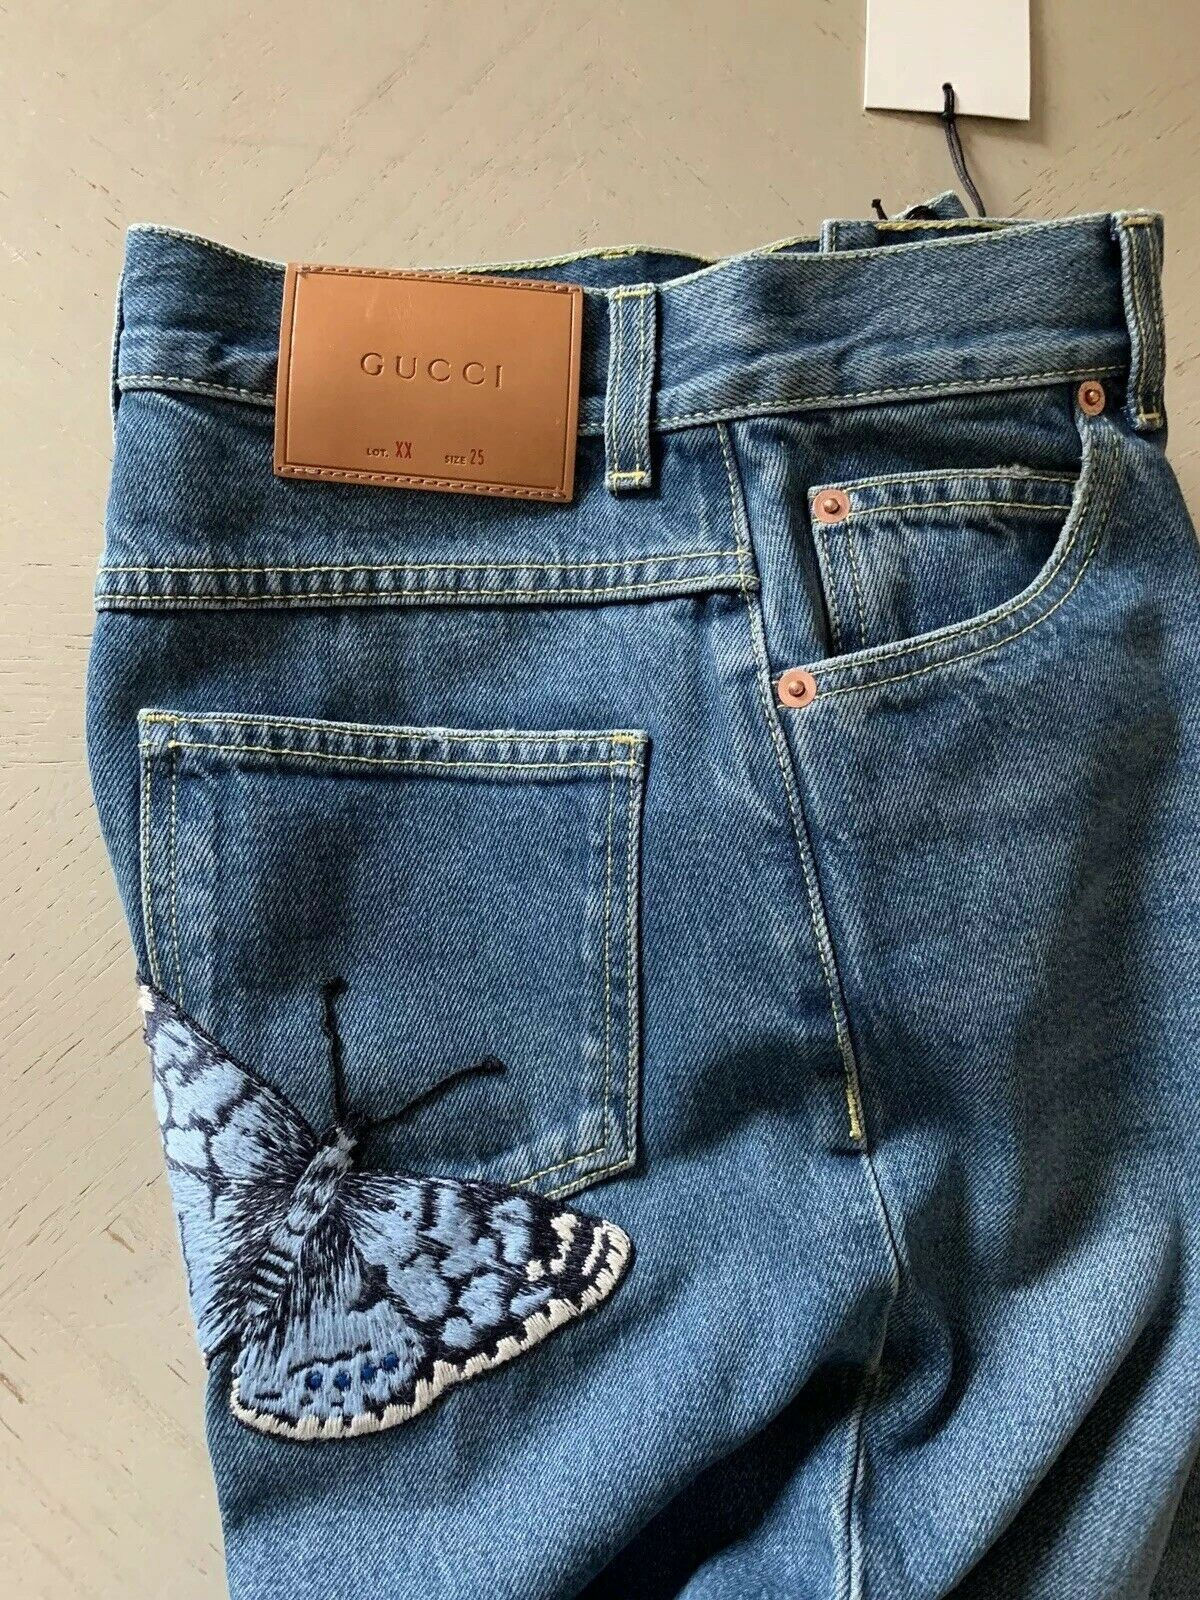 New $945 Gucci Women's Jeans Pants Skirt Blue Size 25